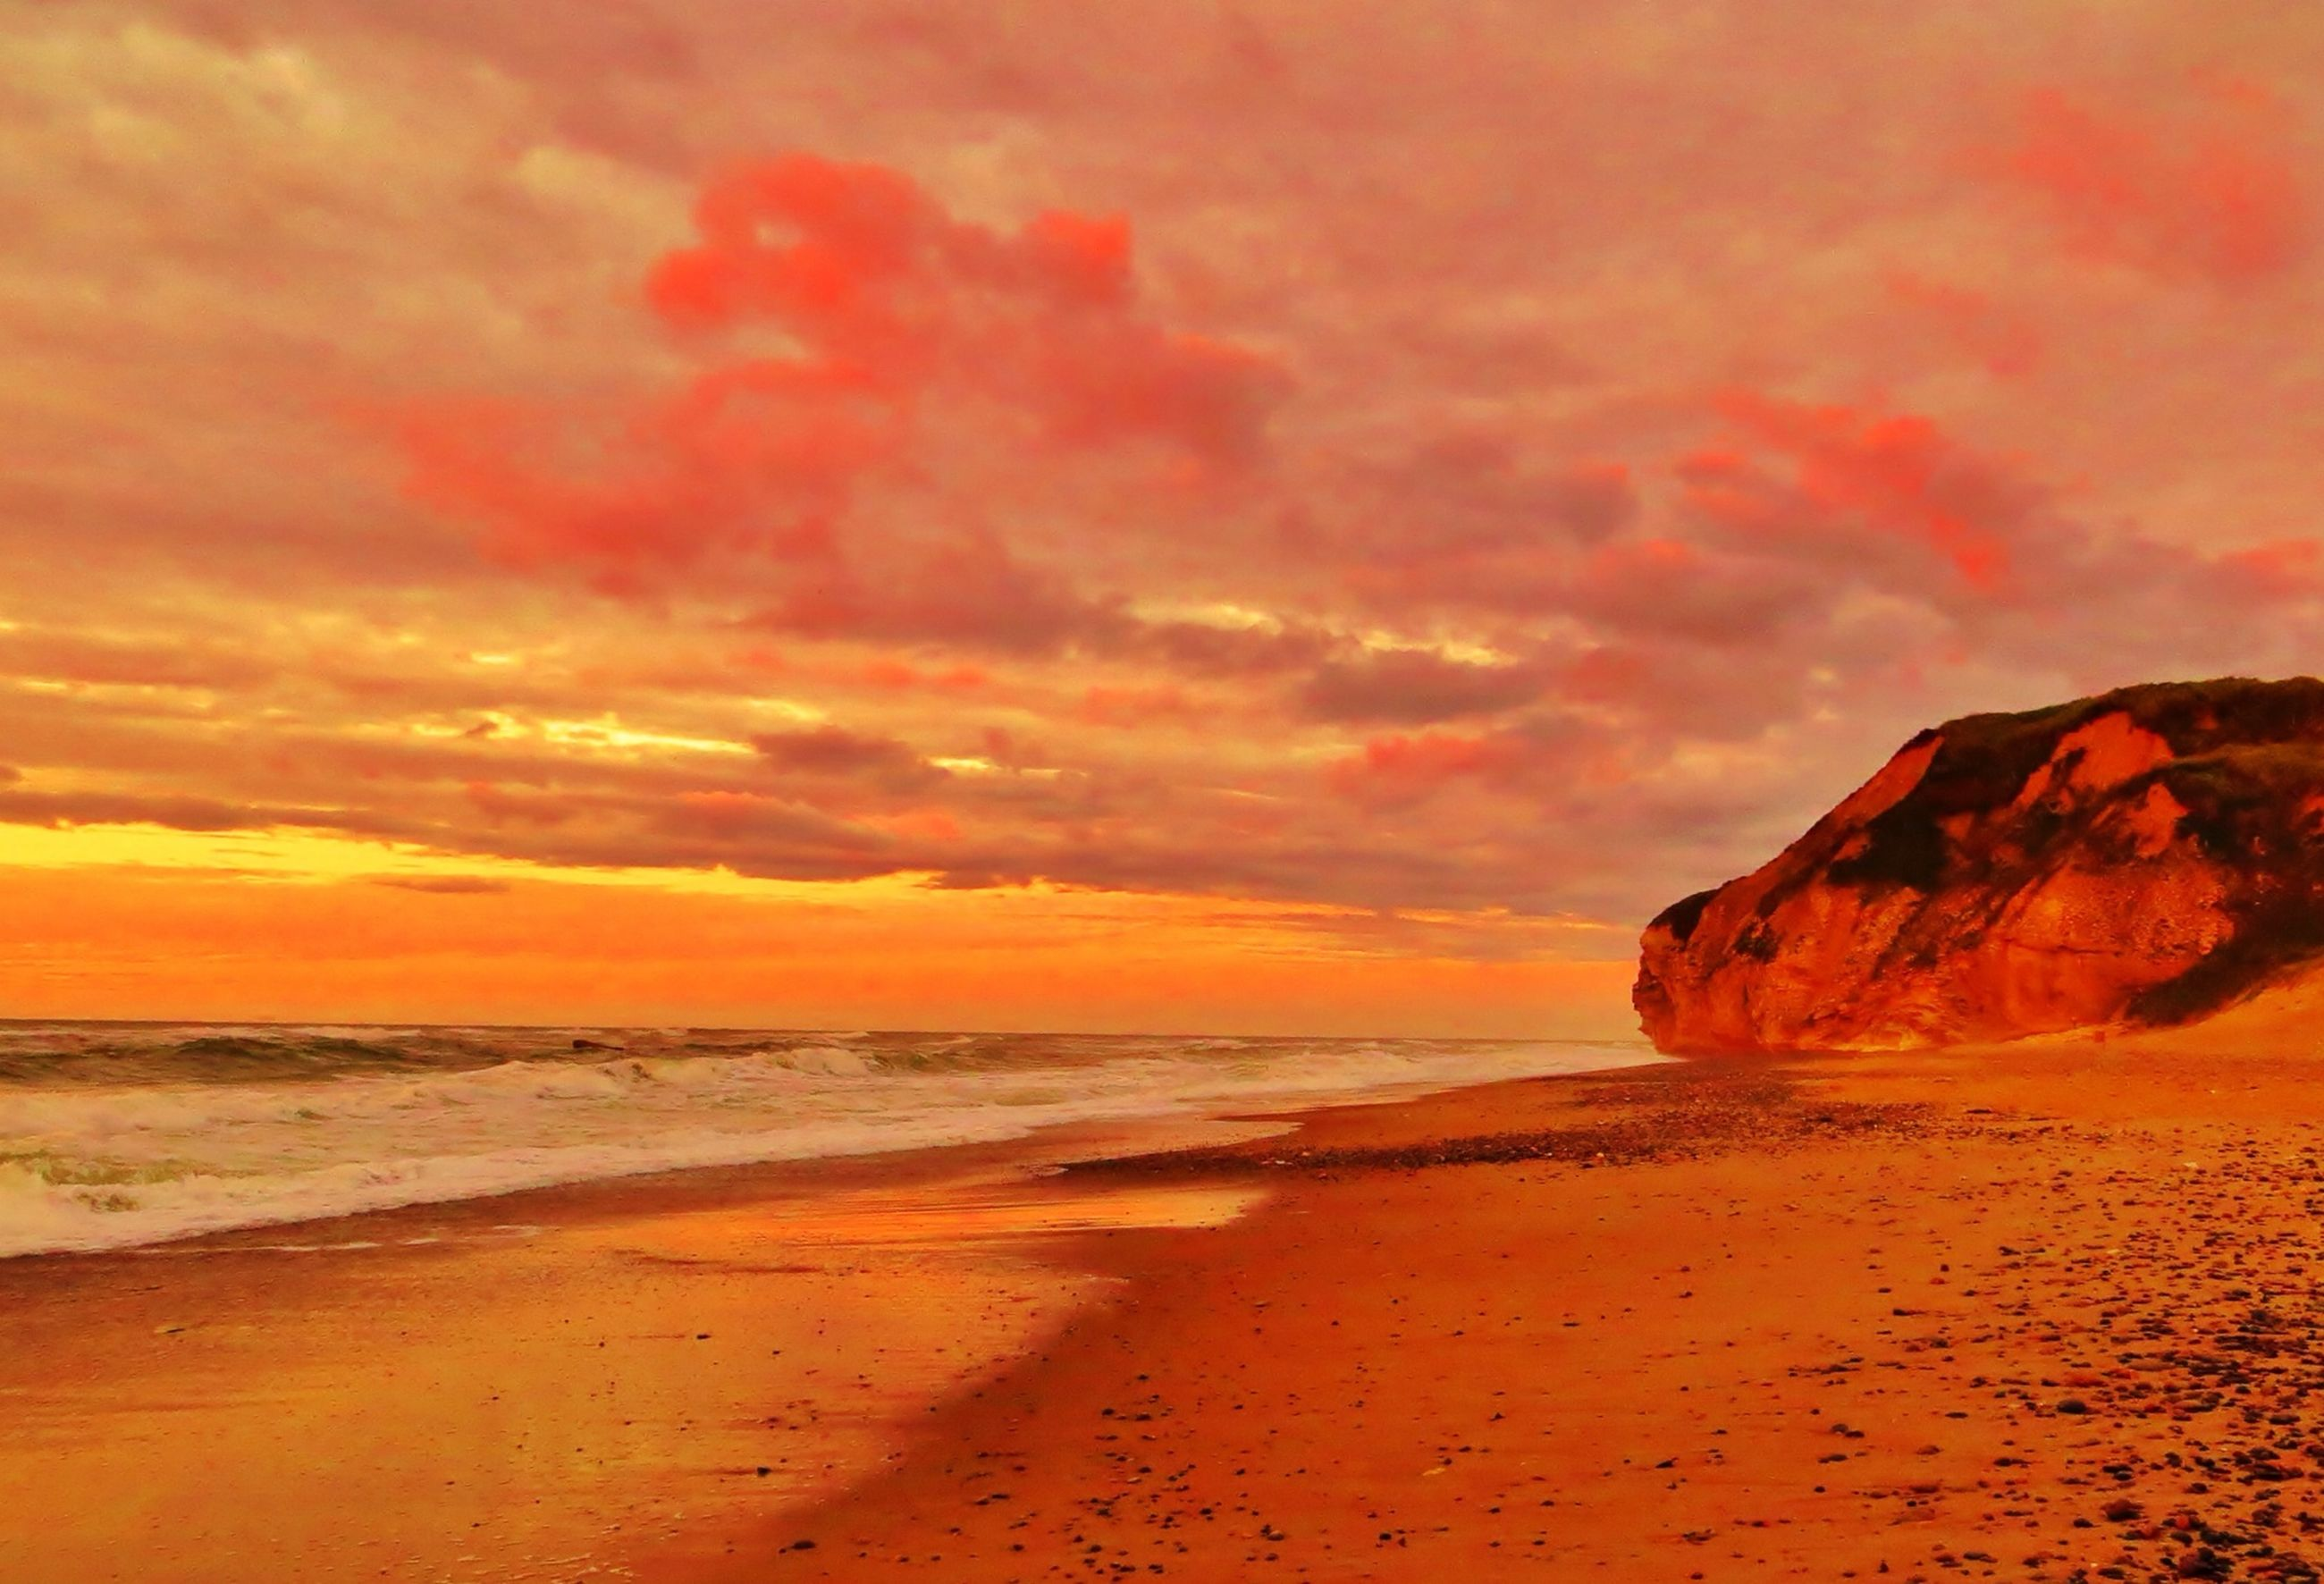 sea, beach, sunset, water, scenics, shore, tranquil scene, beauty in nature, horizon over water, sky, tranquility, orange color, sand, idyllic, nature, rock - object, rock formation, coastline, cloud - sky, wave